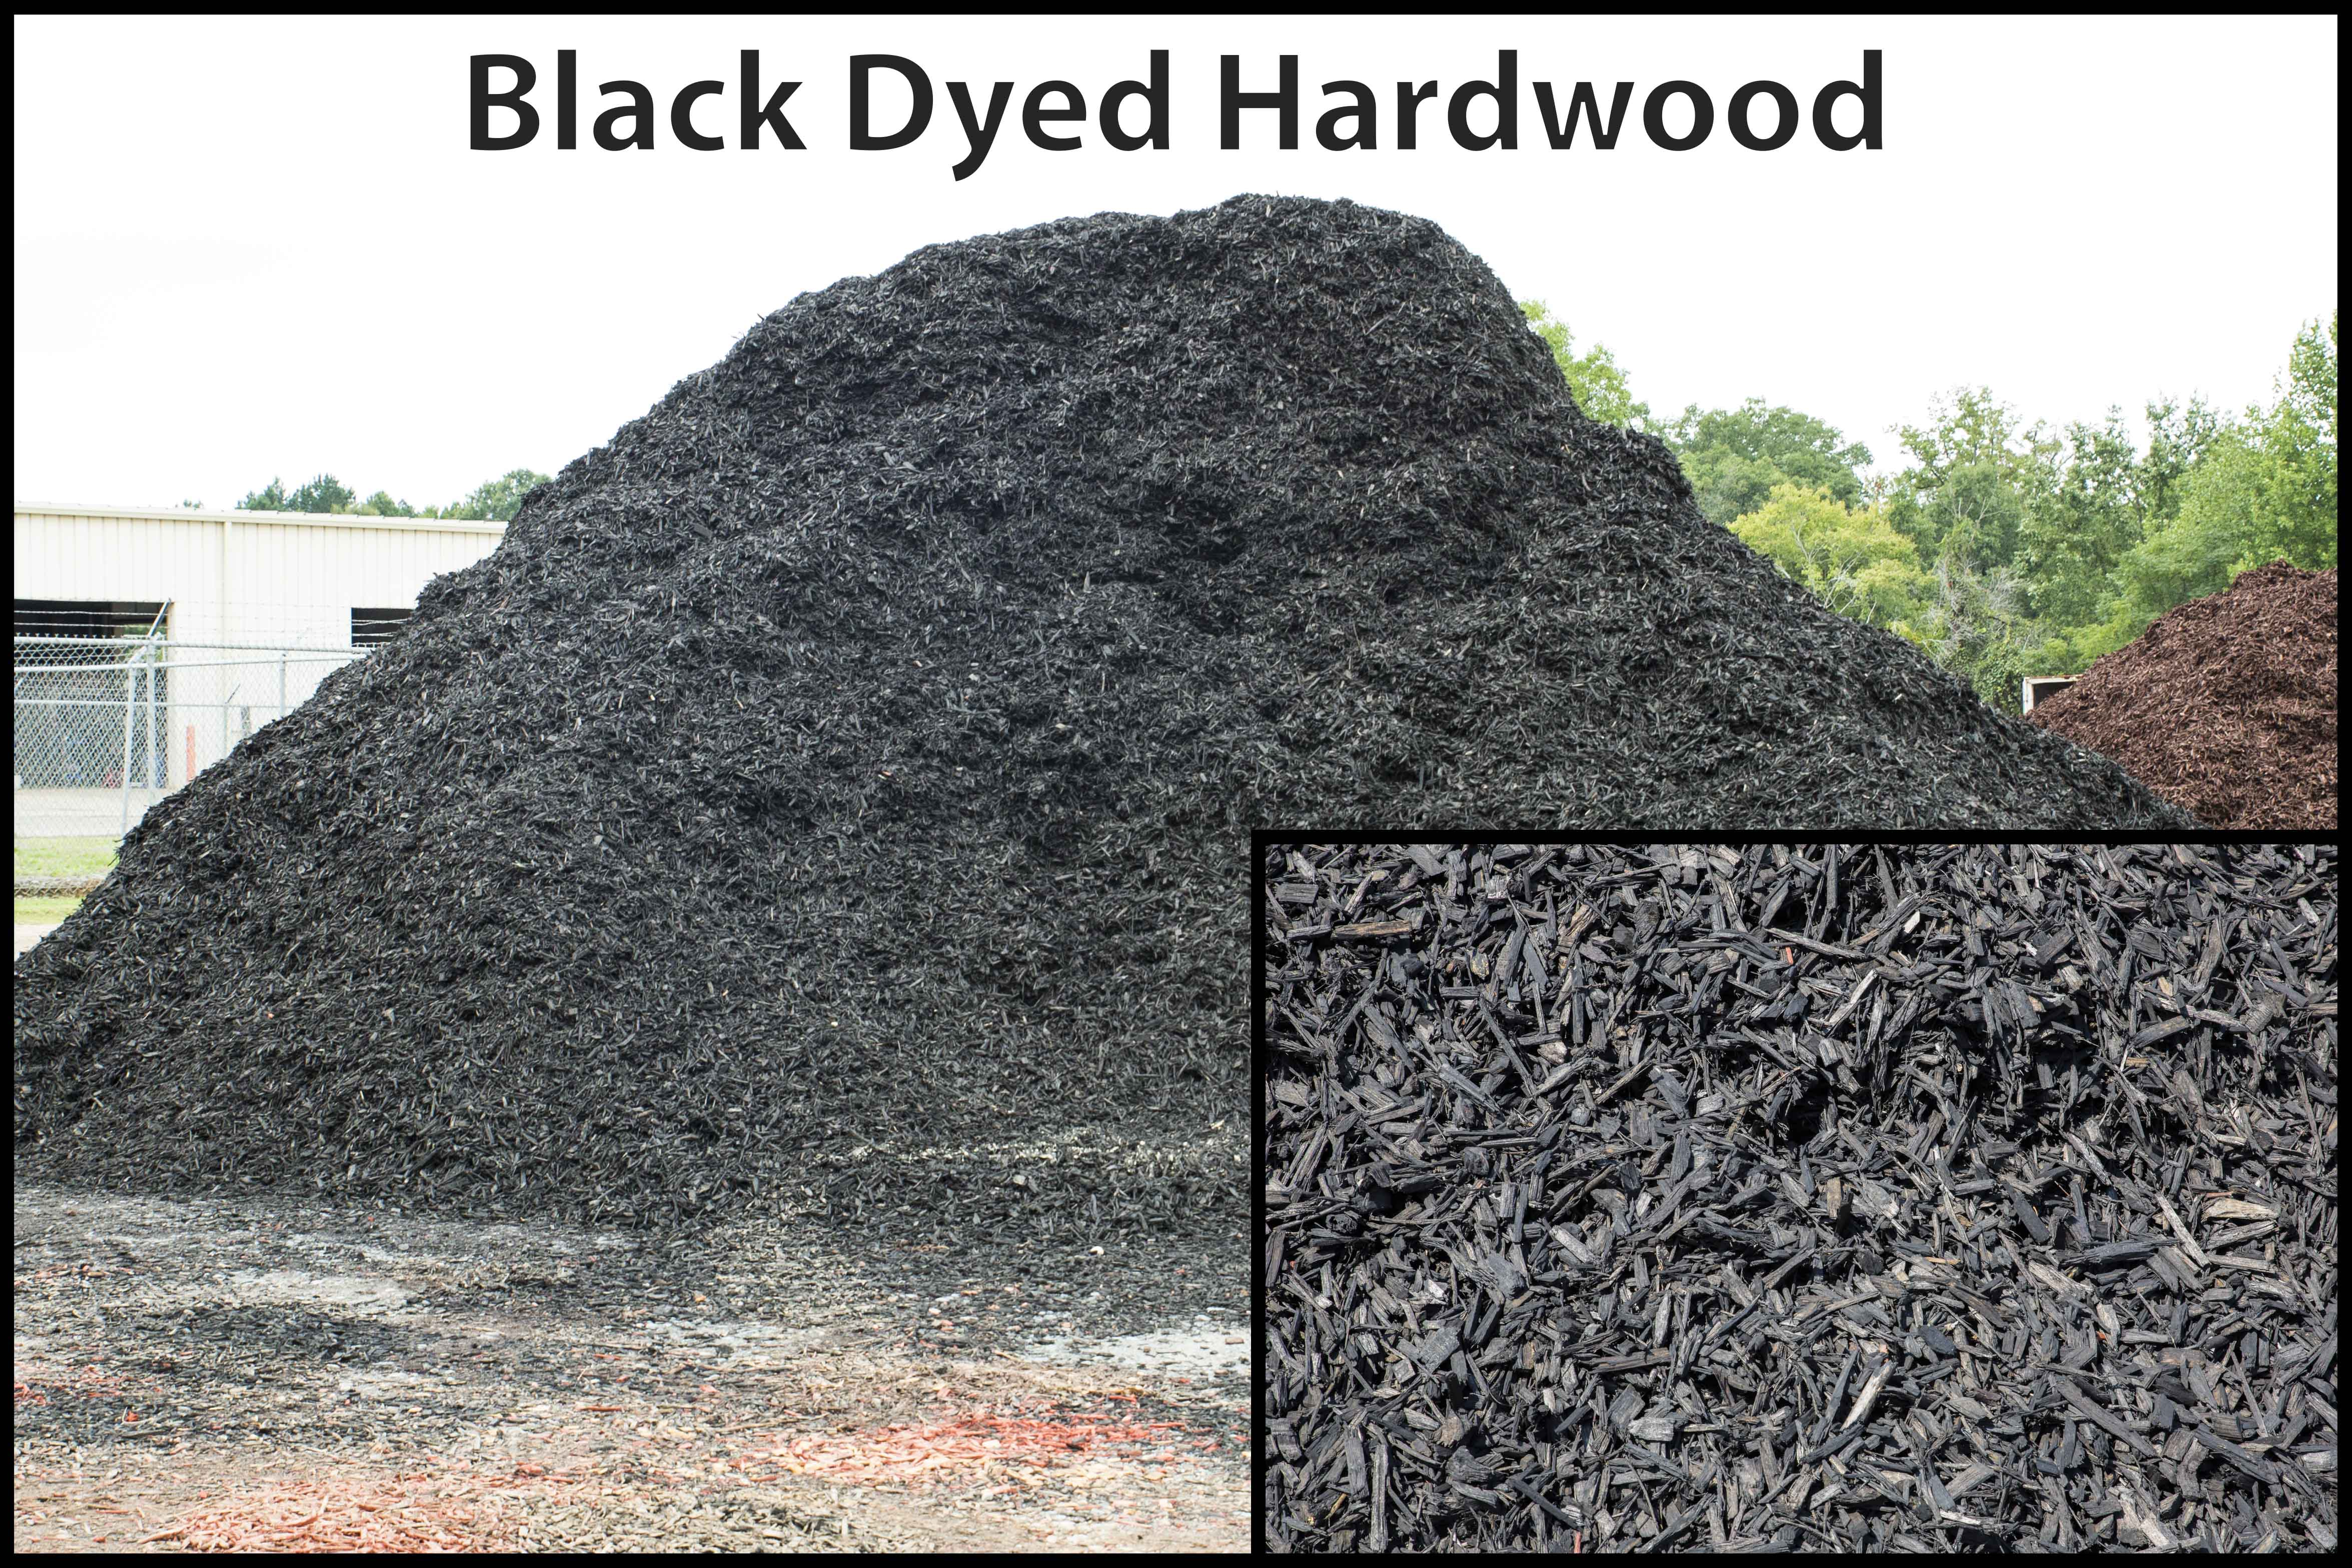 Black Dyed Hardwood